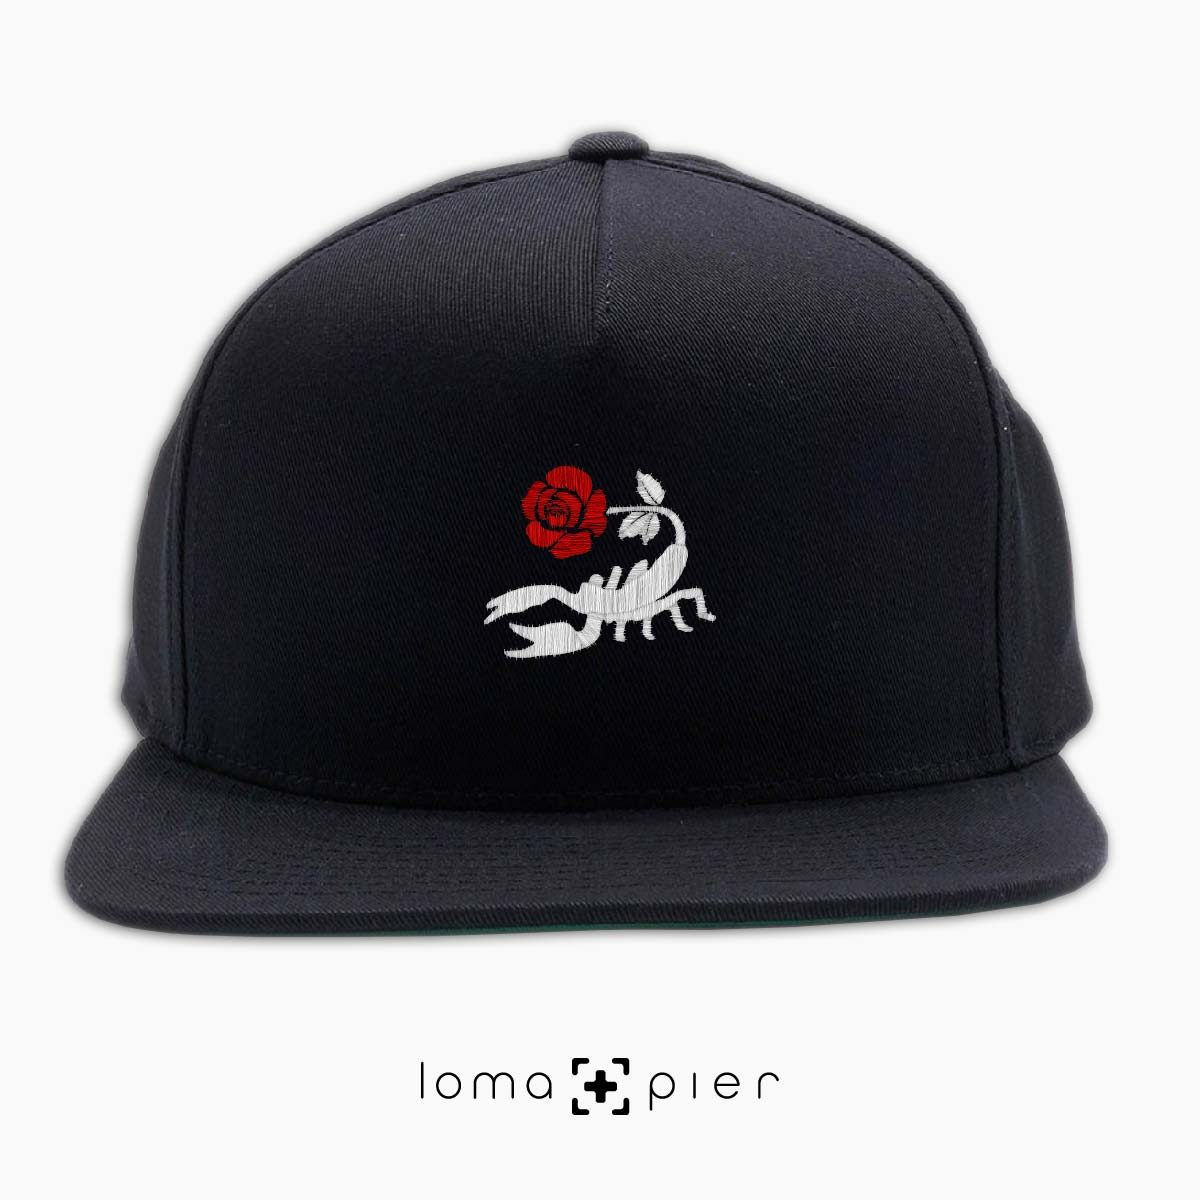 SCORPION ROSE icon embroidered on a black classic snapback hat with multicolor thread by loma+pier hat store